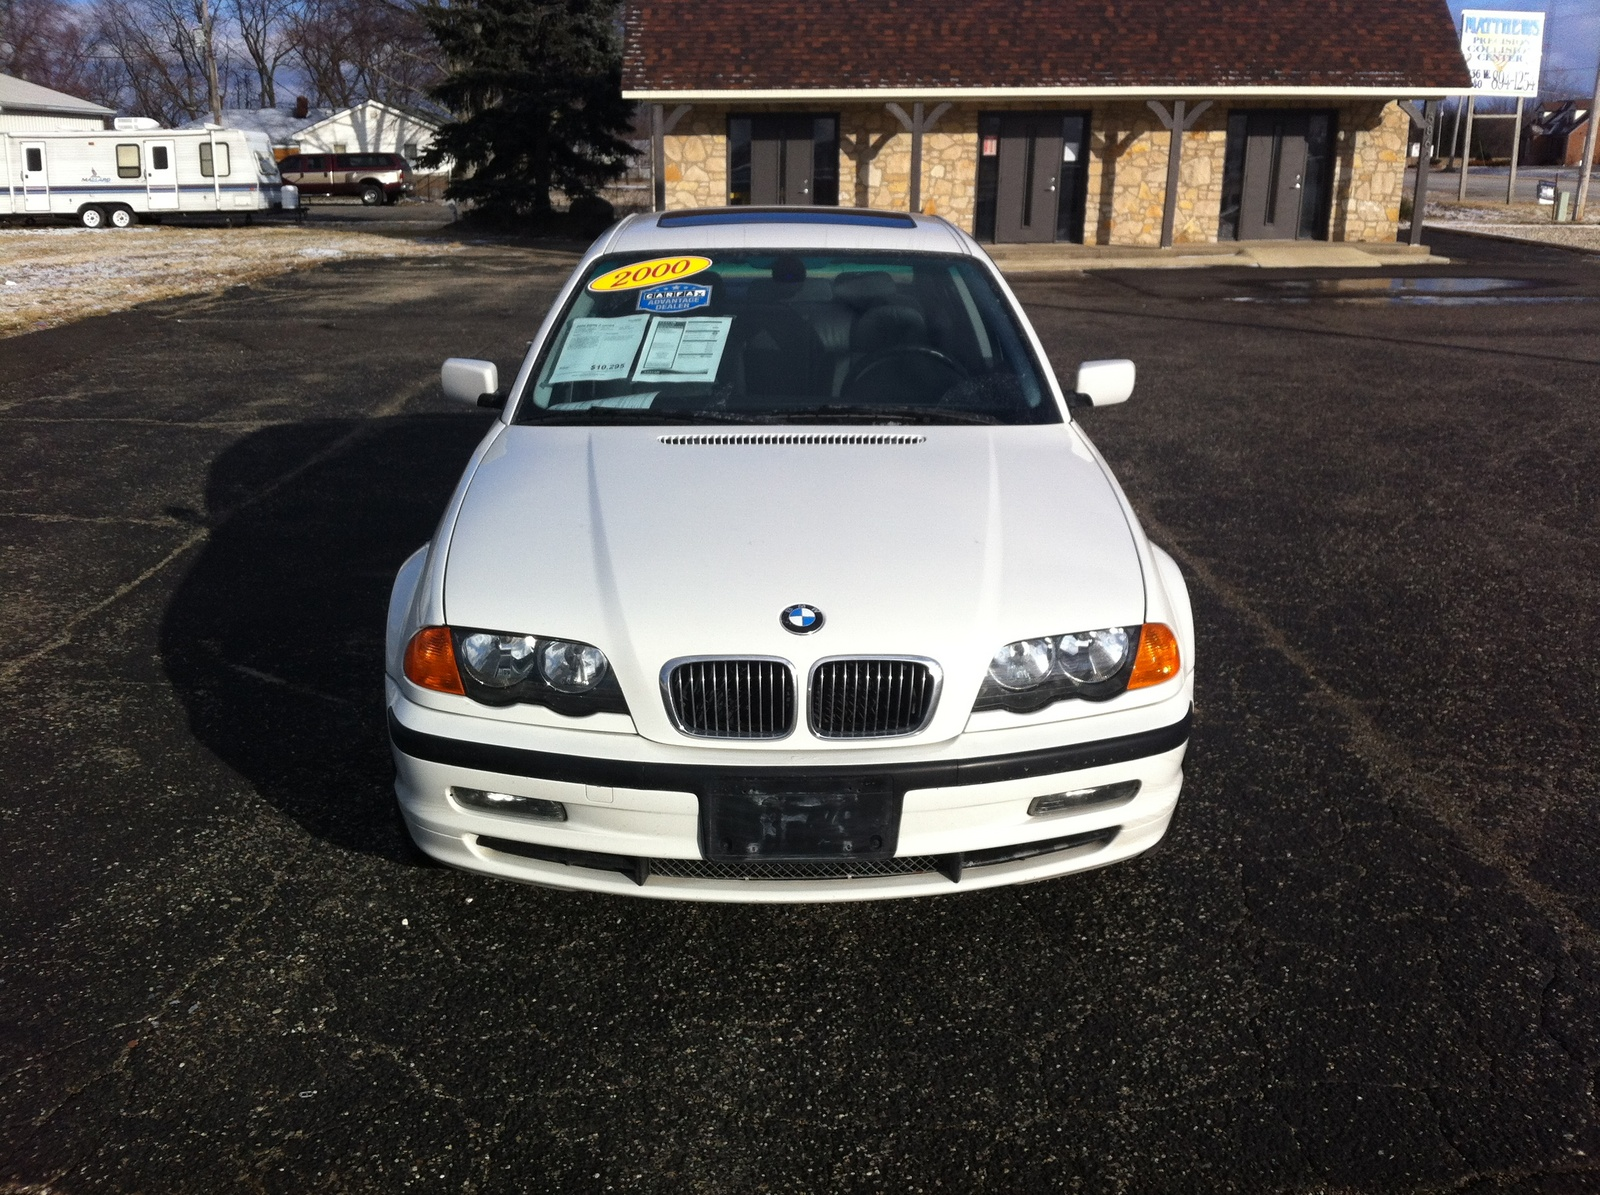 BMW 3 series 325i 2000 photo - 9